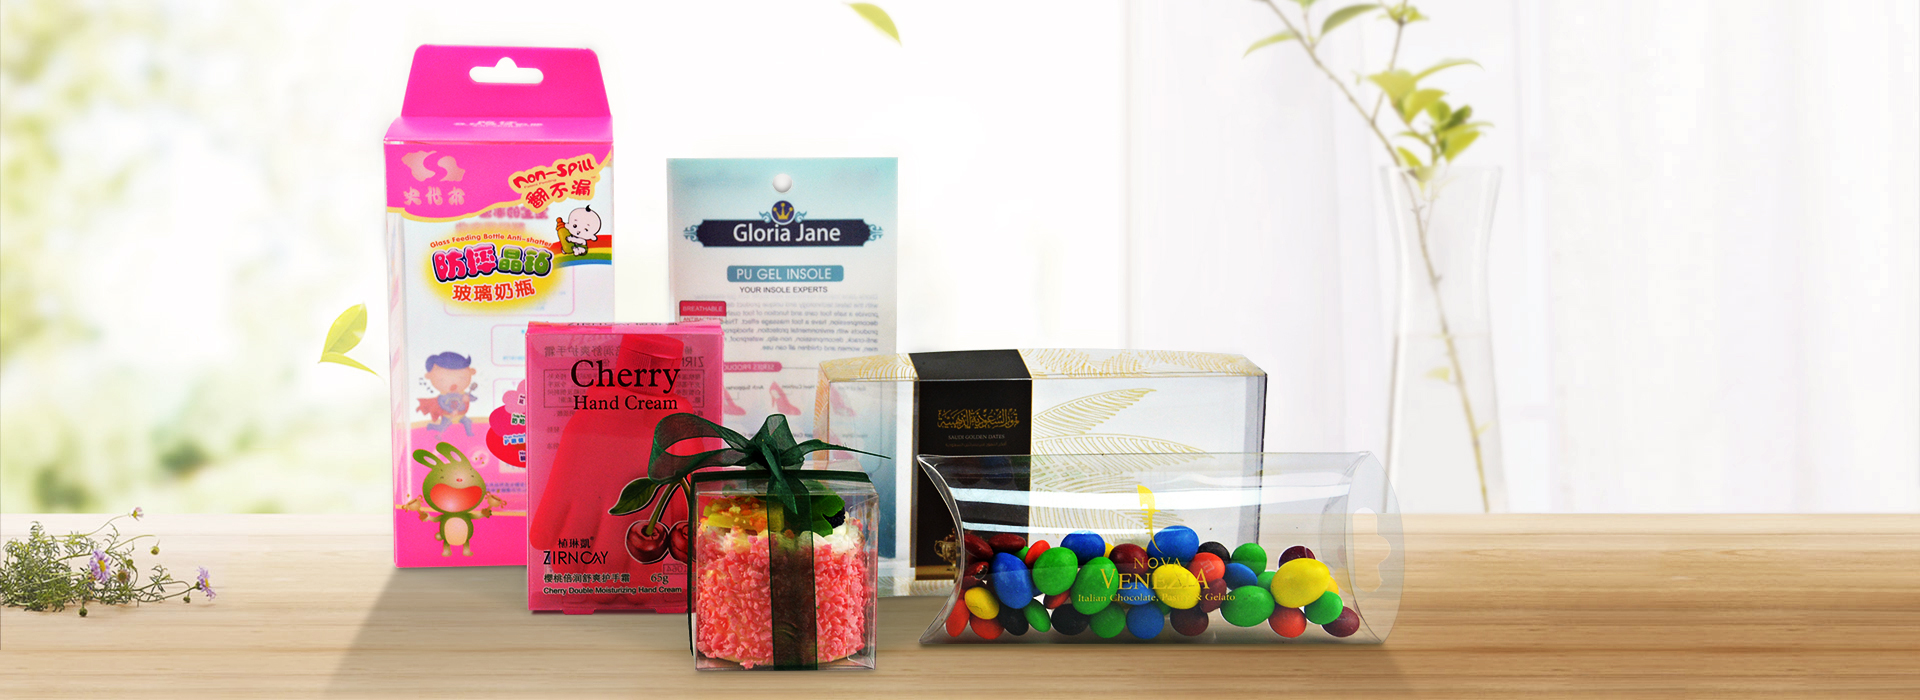 Best Wholesale Plastic Box Packaging And Manufacture-Jiamu